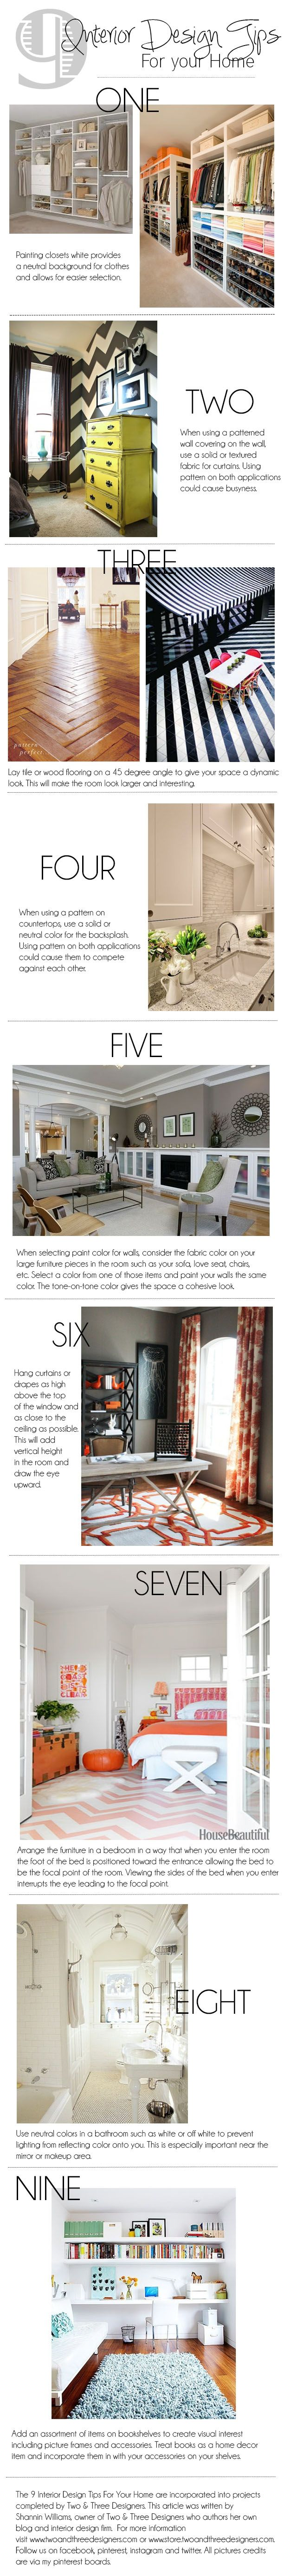 Some good tips for Home Staging, as well: 9 Interior Design Tips for ...